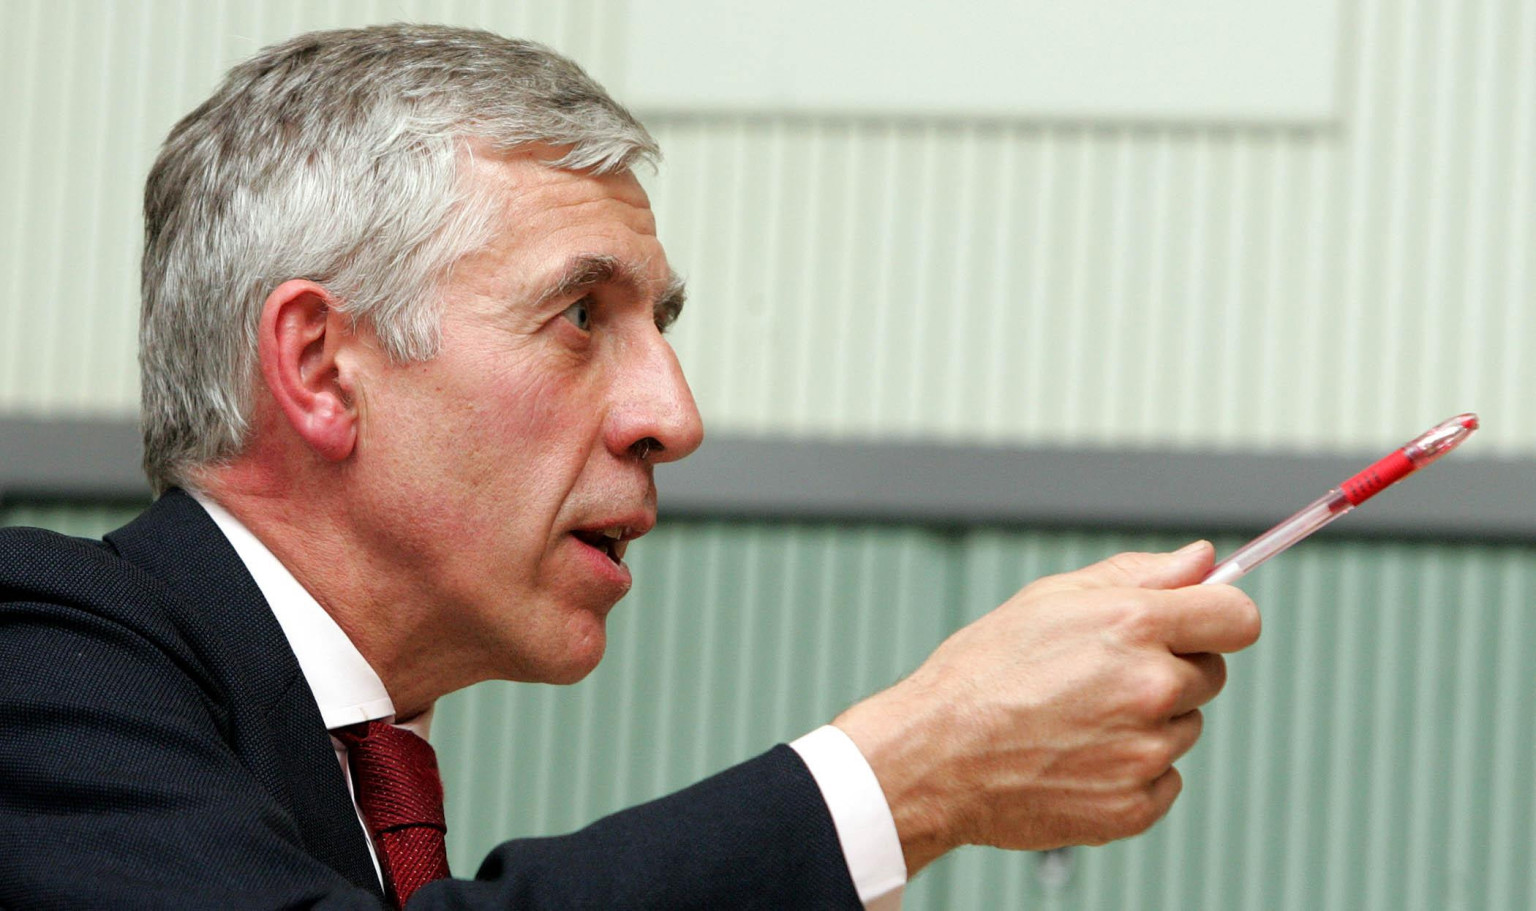 Jack Straw and Malcom Rifkind deny wrongdoing over 'cash for access' report